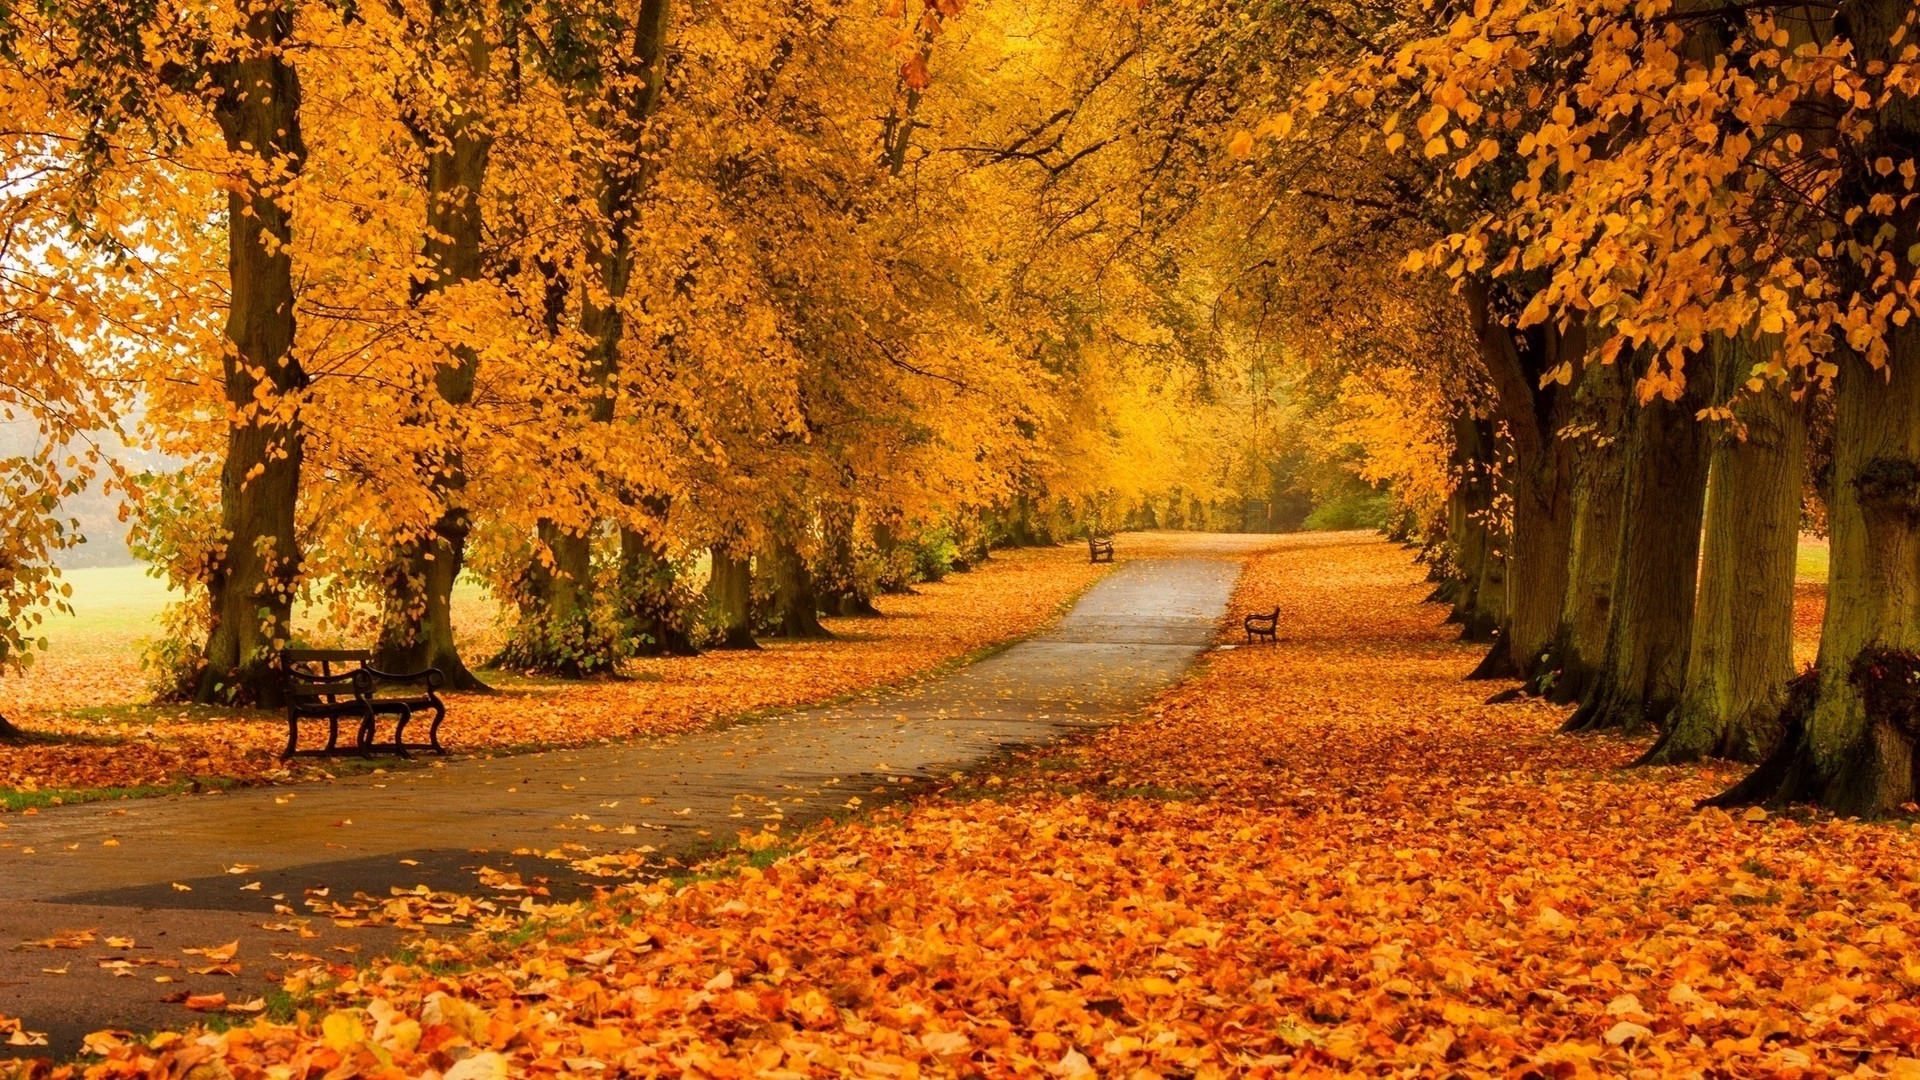 Autumn Falling Leaves Live Wallpaper Fall Wallpaper For Desktop 1920x1080 60 Images